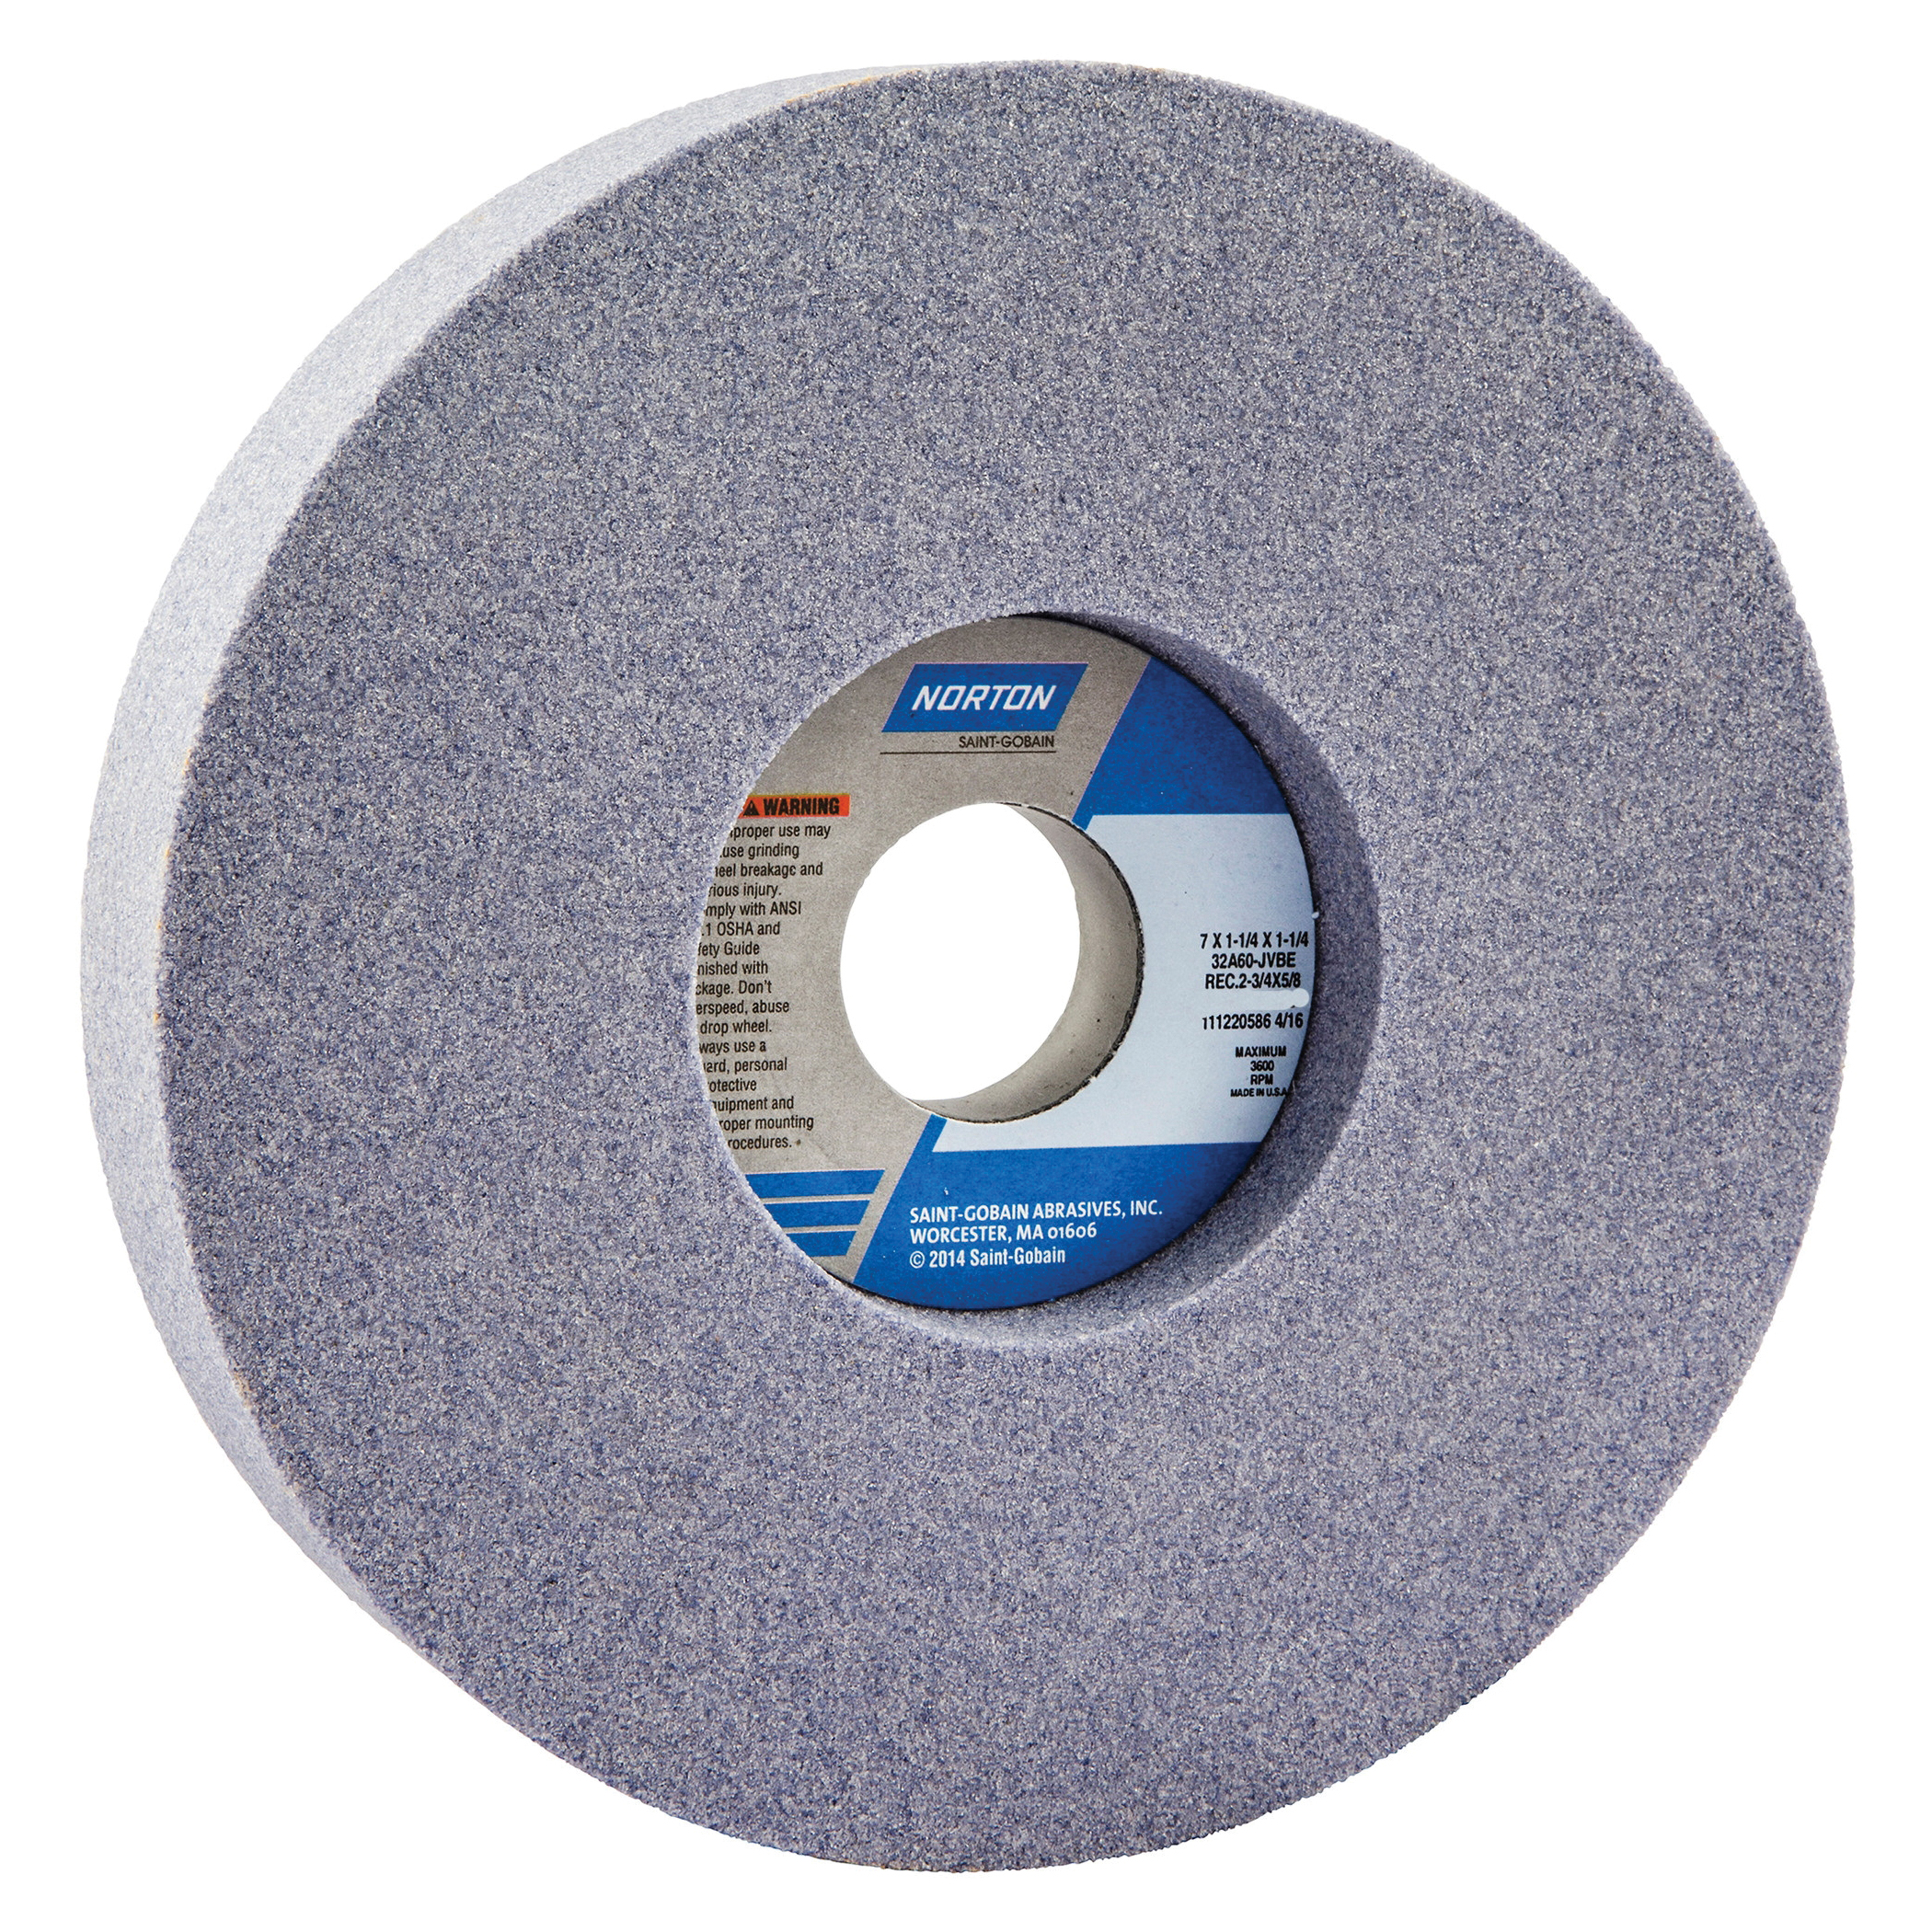 Norton® 66252942844 32A 1-Side Recessed Toolroom Wheel, 7 in Dia x 1-1/2 in THK, 1-1/4 in Center Hole, 60 Grit, Aluminum Oxide Abrasive